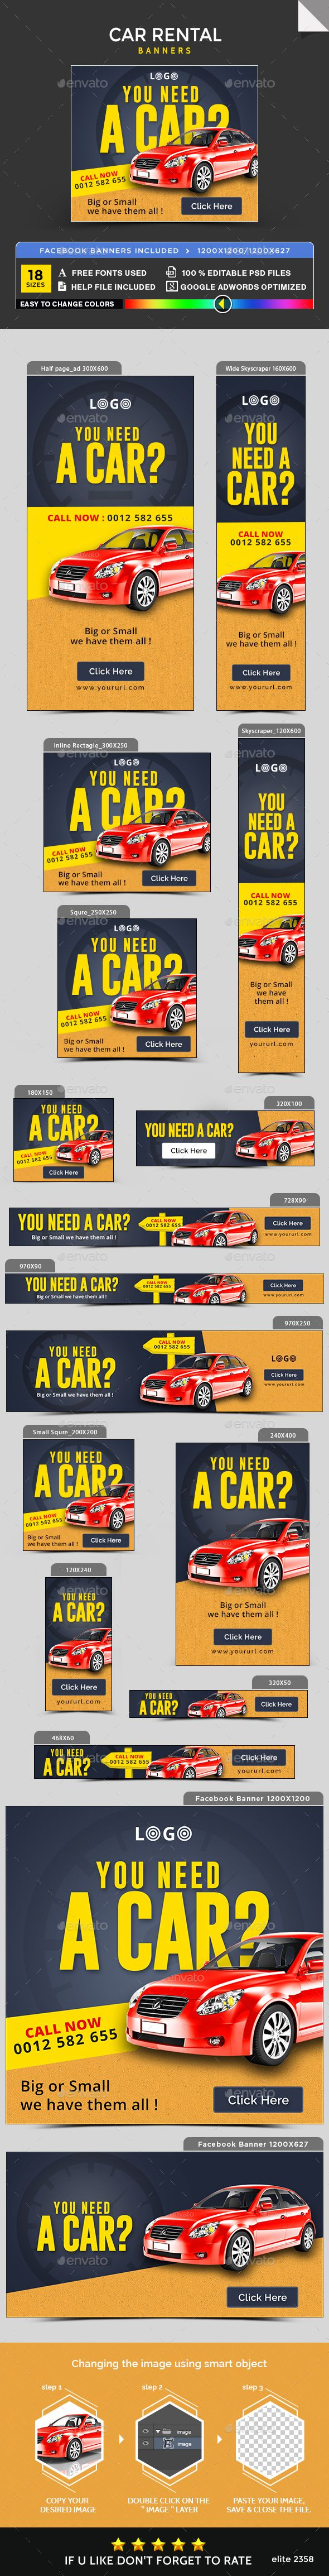 Car Rental Banners — Photoshop PSD #banner set #social media • Available here → https://graphicriver.net/item/car-rental-banners/20191842?ref=pxcr